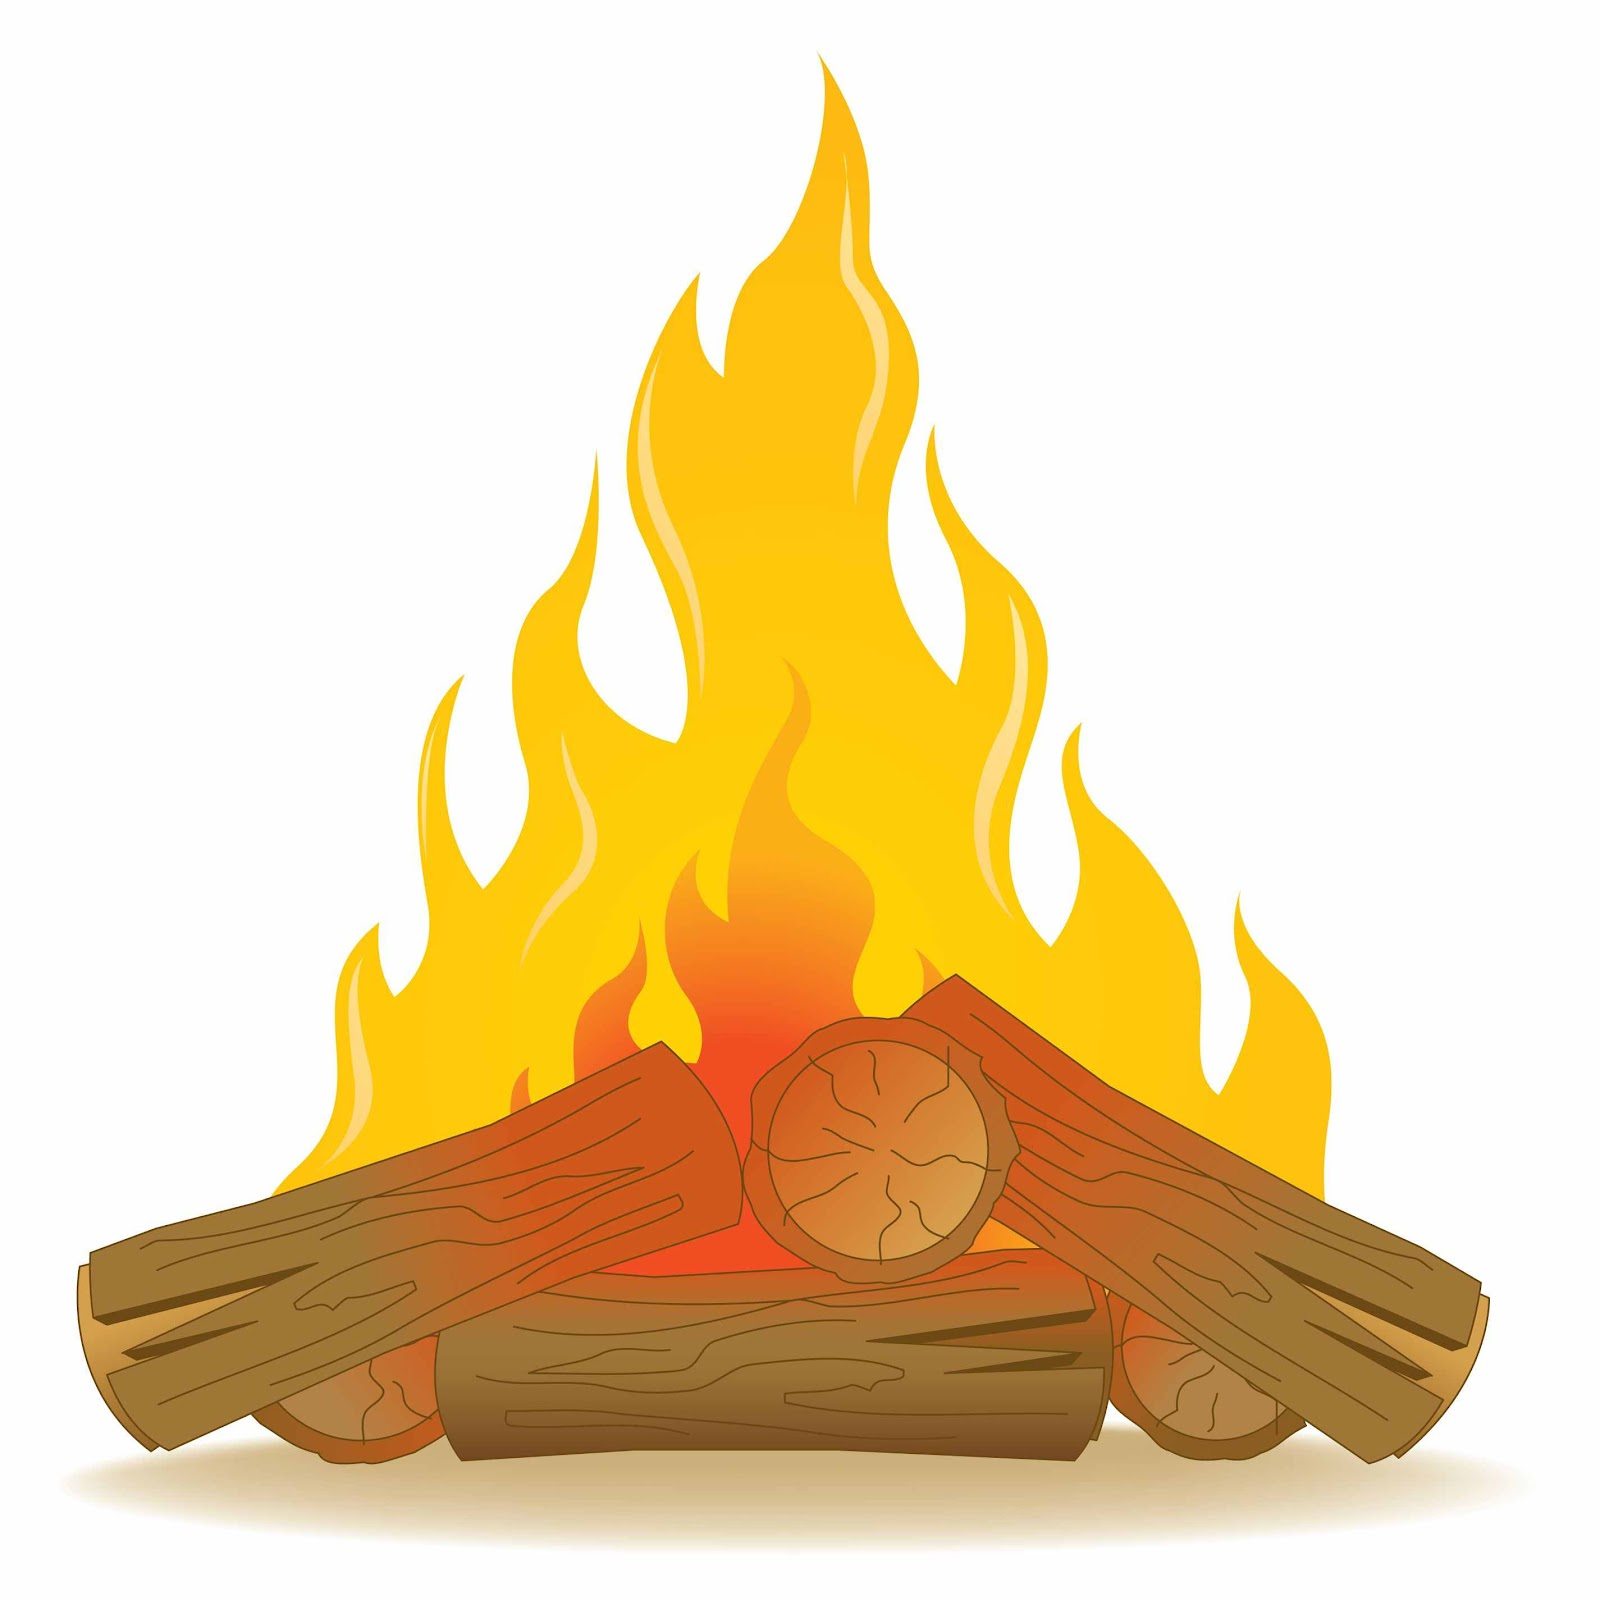 The Miracle Of Fire And Wood That Cannot Be Obtained Artificially